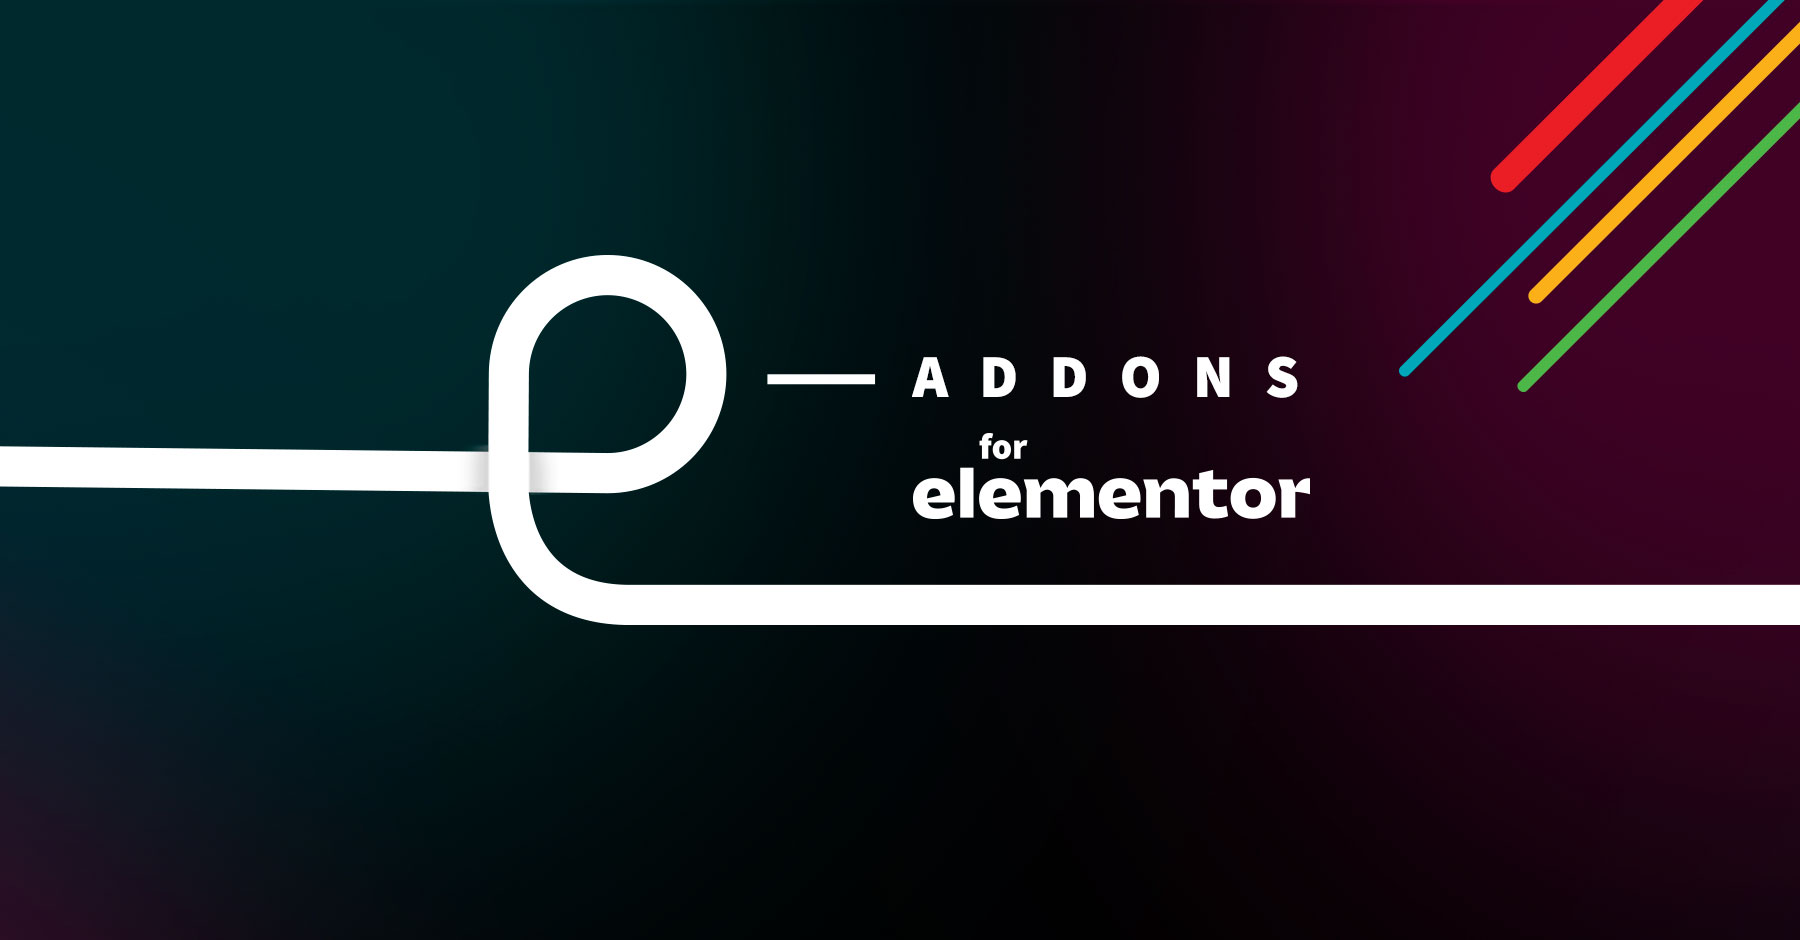 Share e addons for elementor